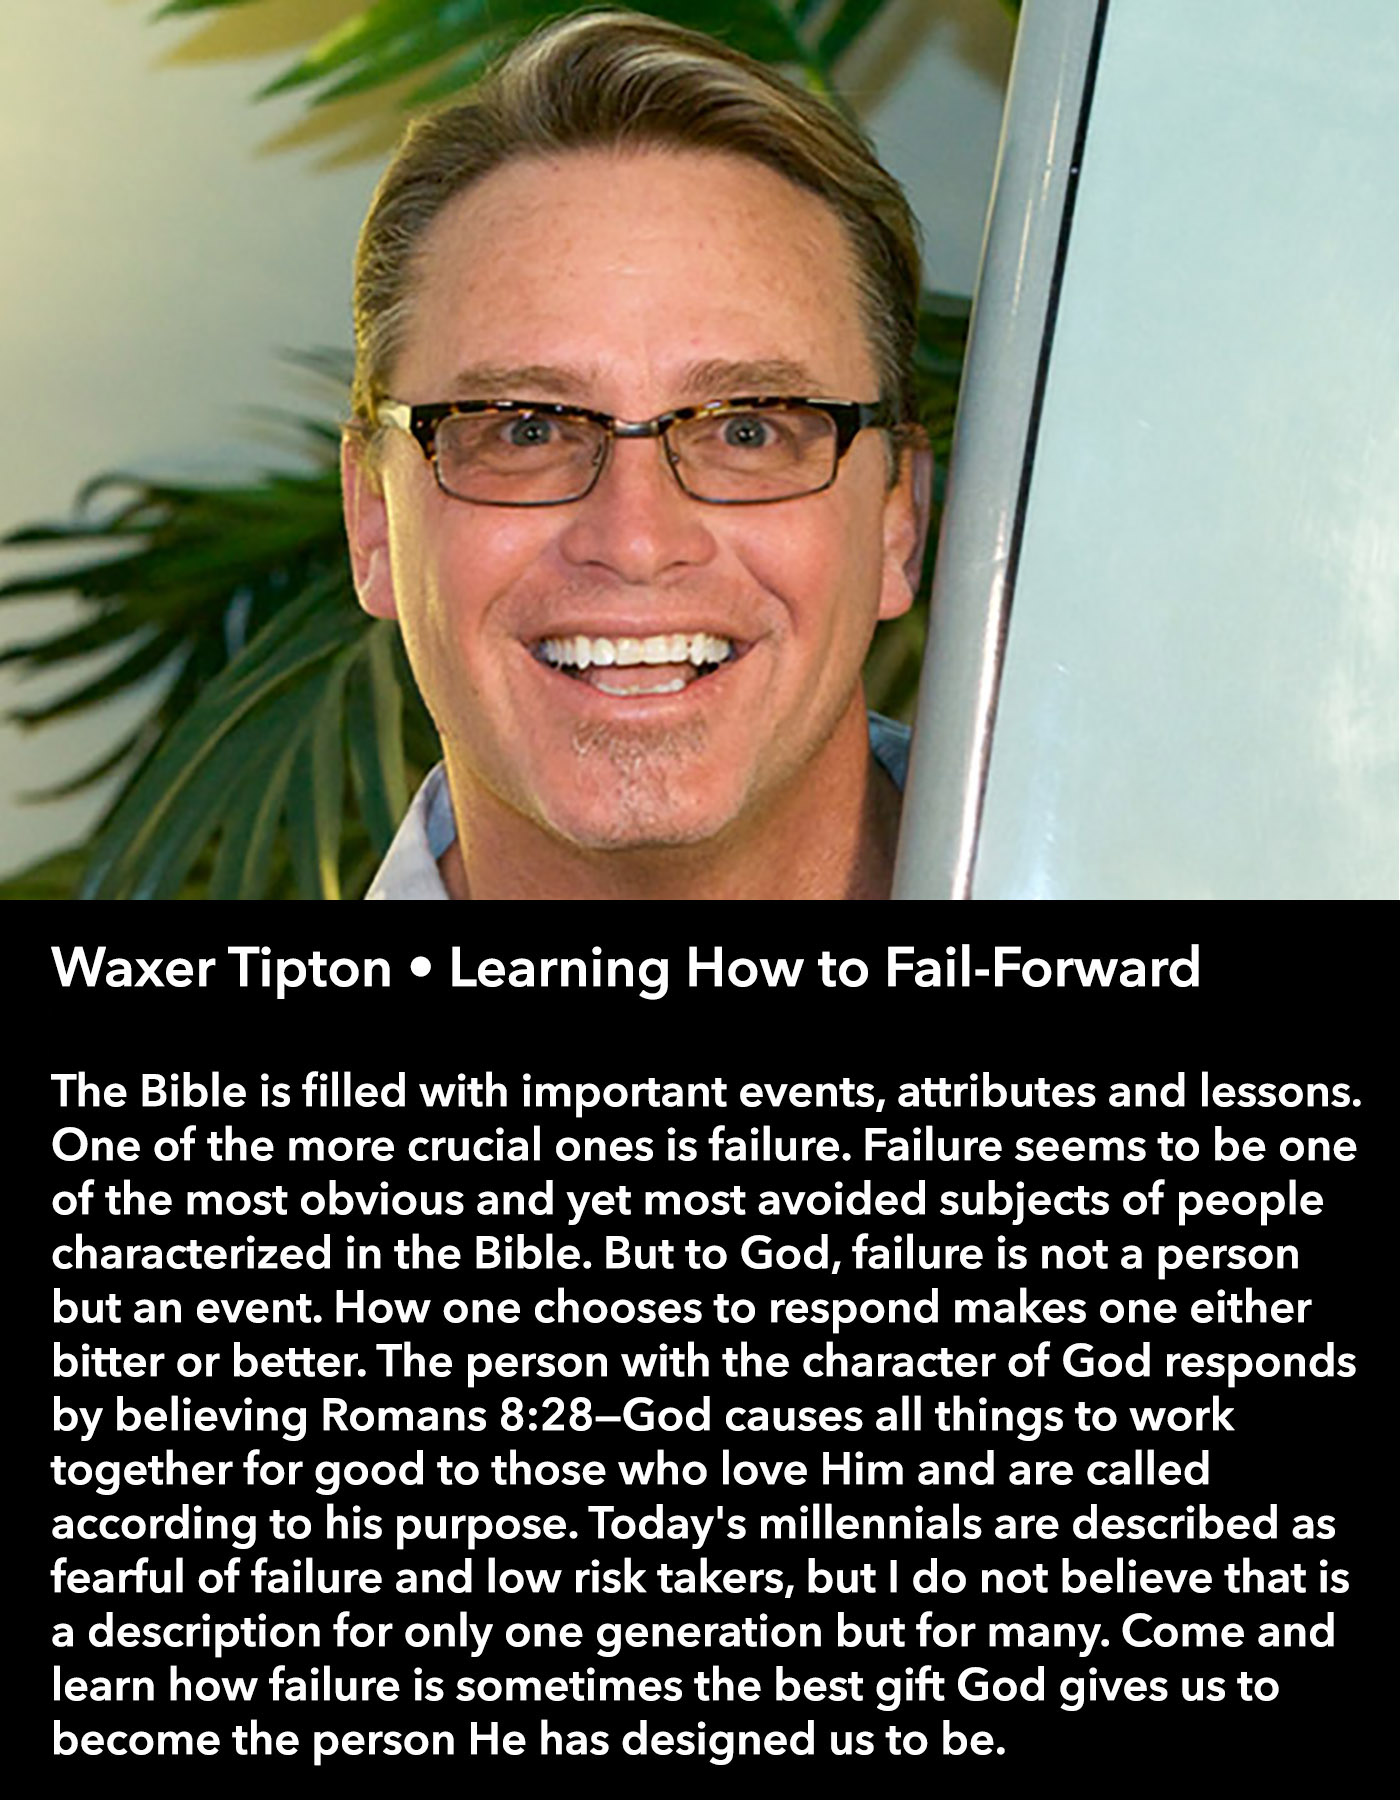 Waxer Tipton • Learning How to Fail-Forward • Friday Morning, March 17 • 10:30 – 11:45 am